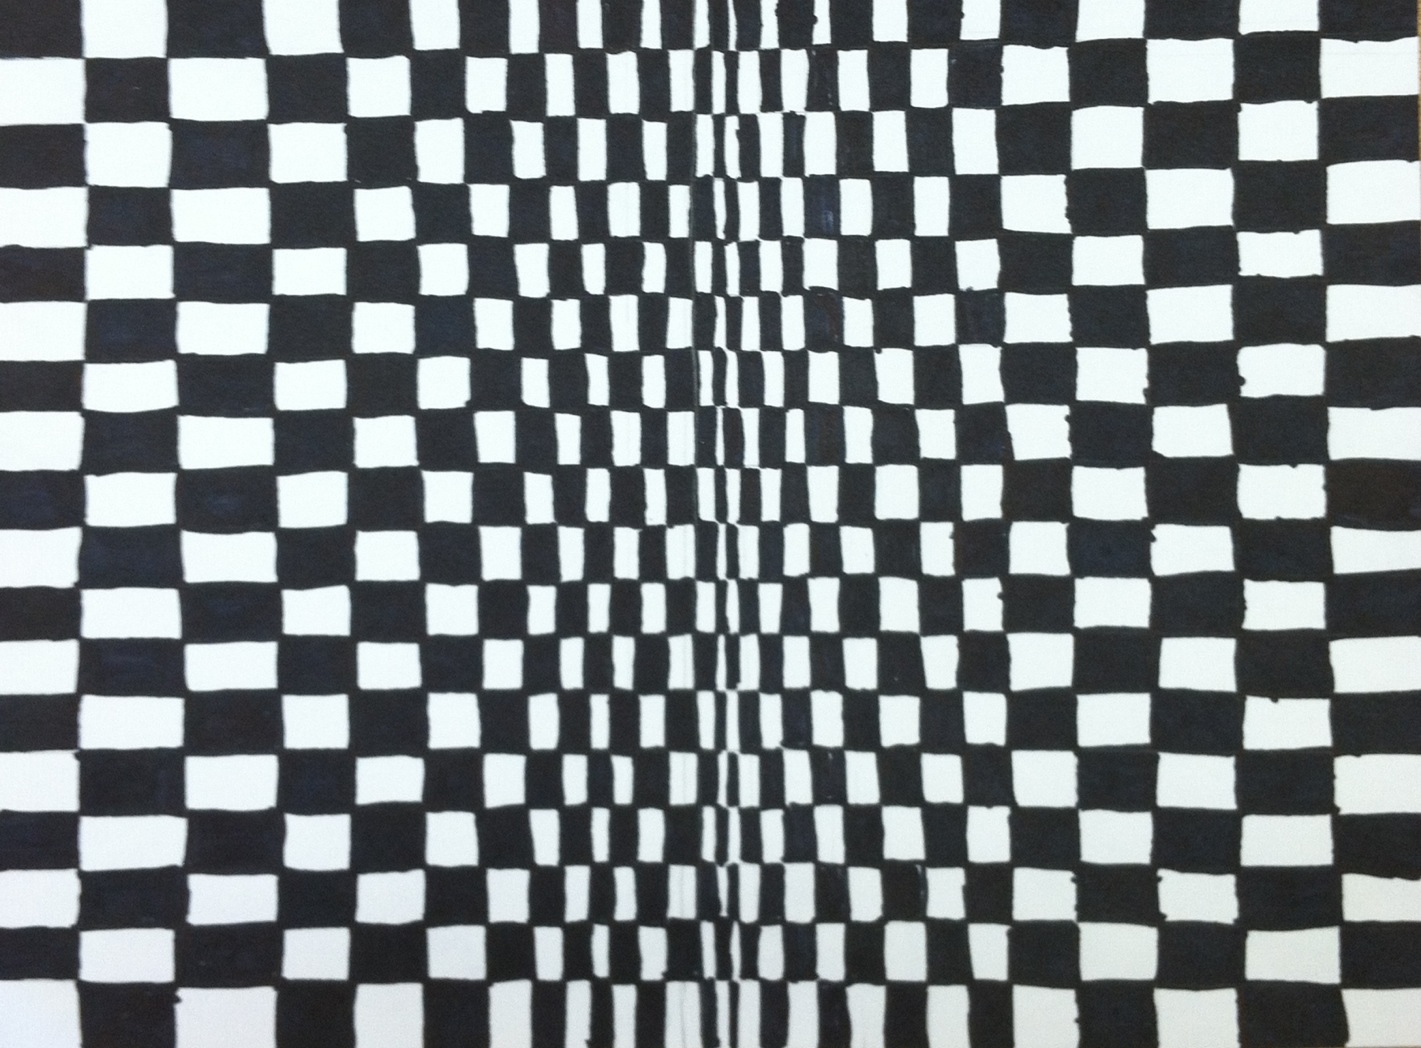 Line Design Op Art : Line designs with shading u teachkidsart